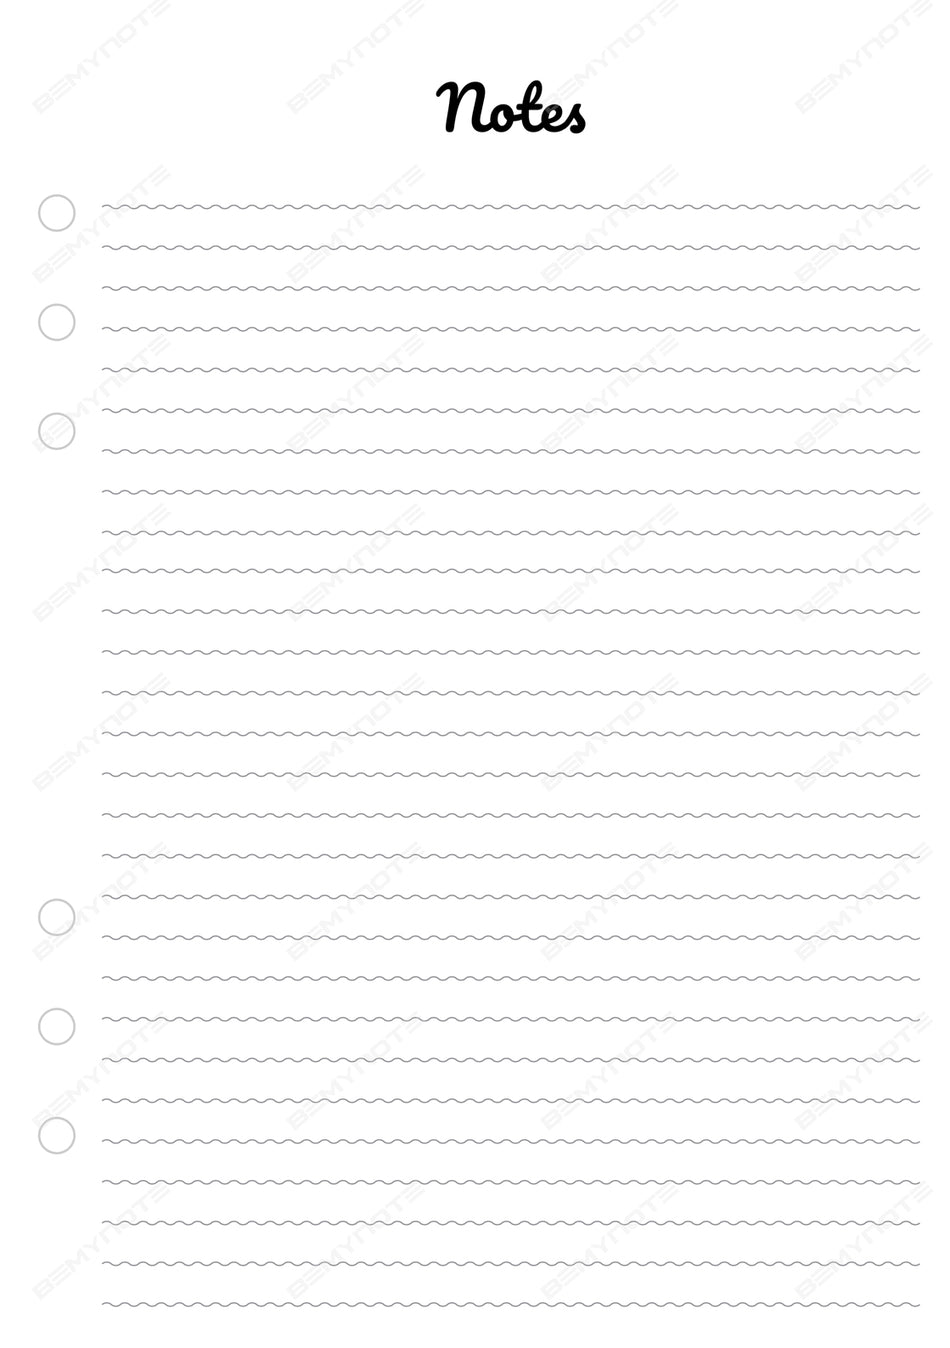 Waves Notes Pages Insert - A5 Printed Inserts for Binder Notebook - 2